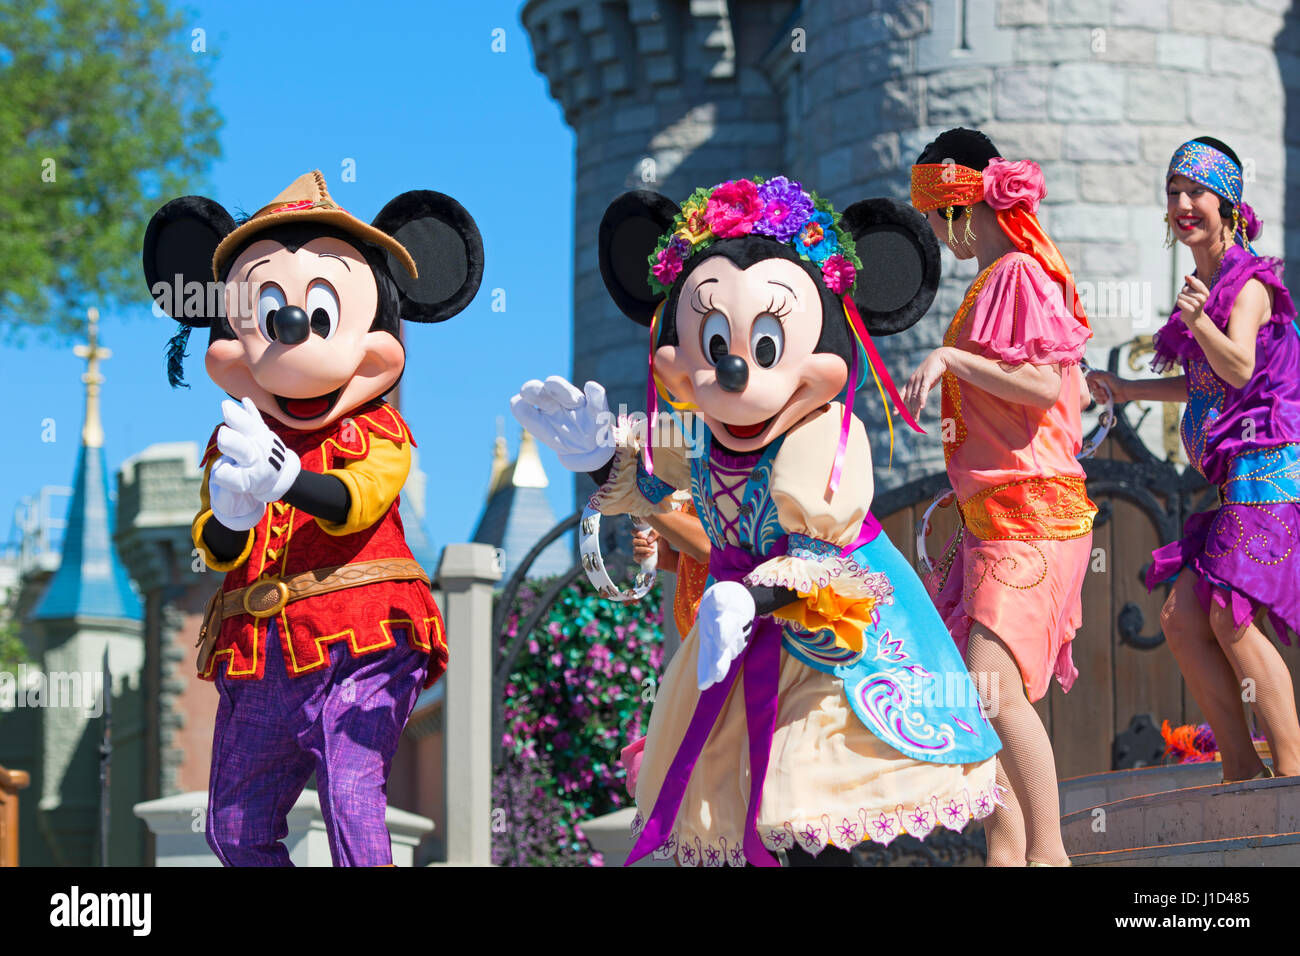 Mickey Mouse and Minnie Mouse, Mickey's Royal Friendship Faire Live show at Cinderella Castle, Magic Kingdom, - Stock Image